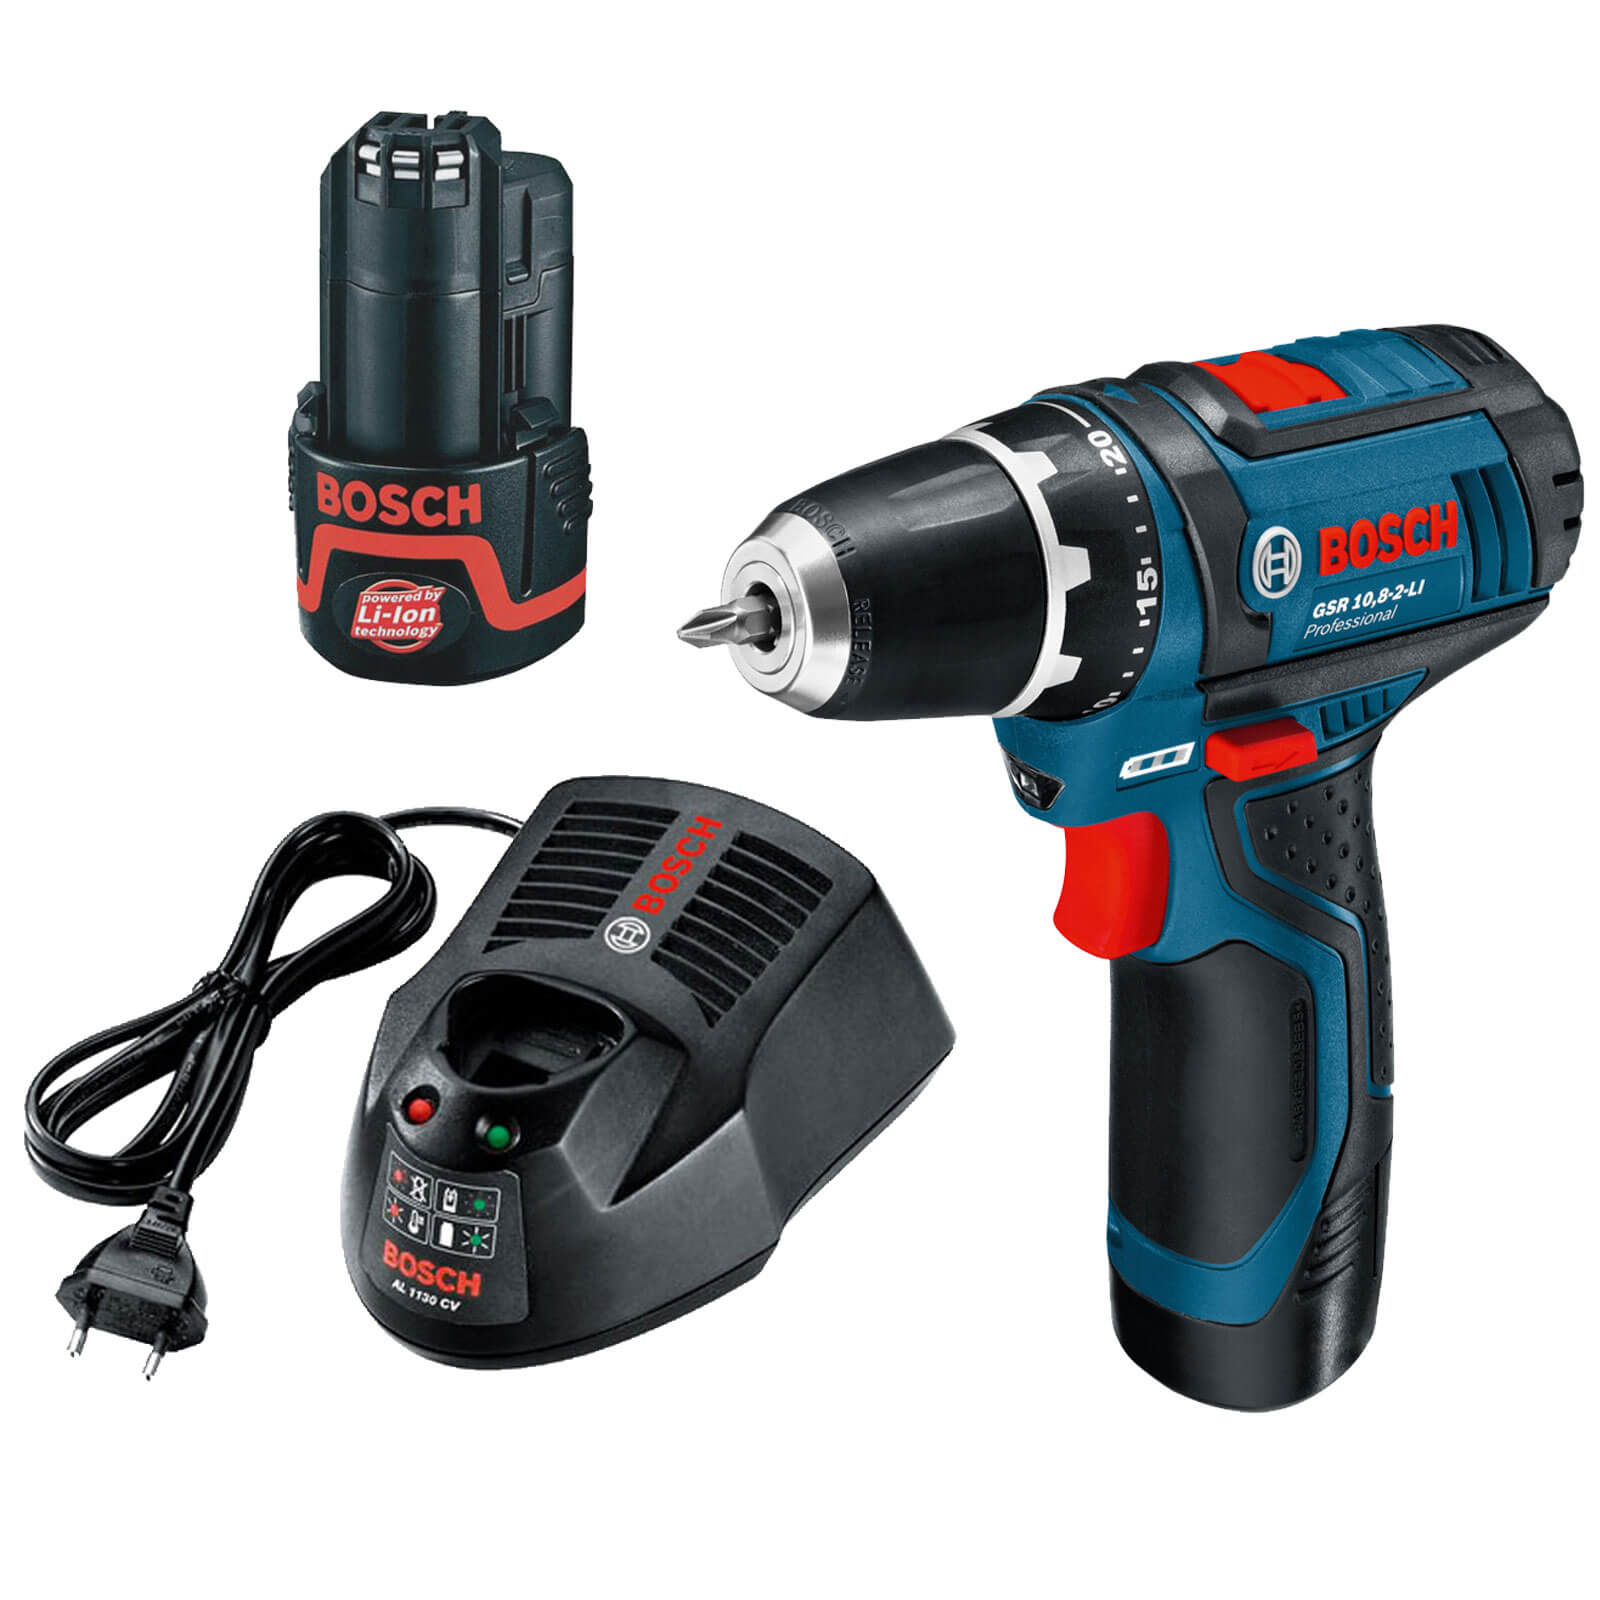 bosch gsr 10 8 2 li cordless heavy duty drill driver with 2 li ion batteries 2ah. Black Bedroom Furniture Sets. Home Design Ideas